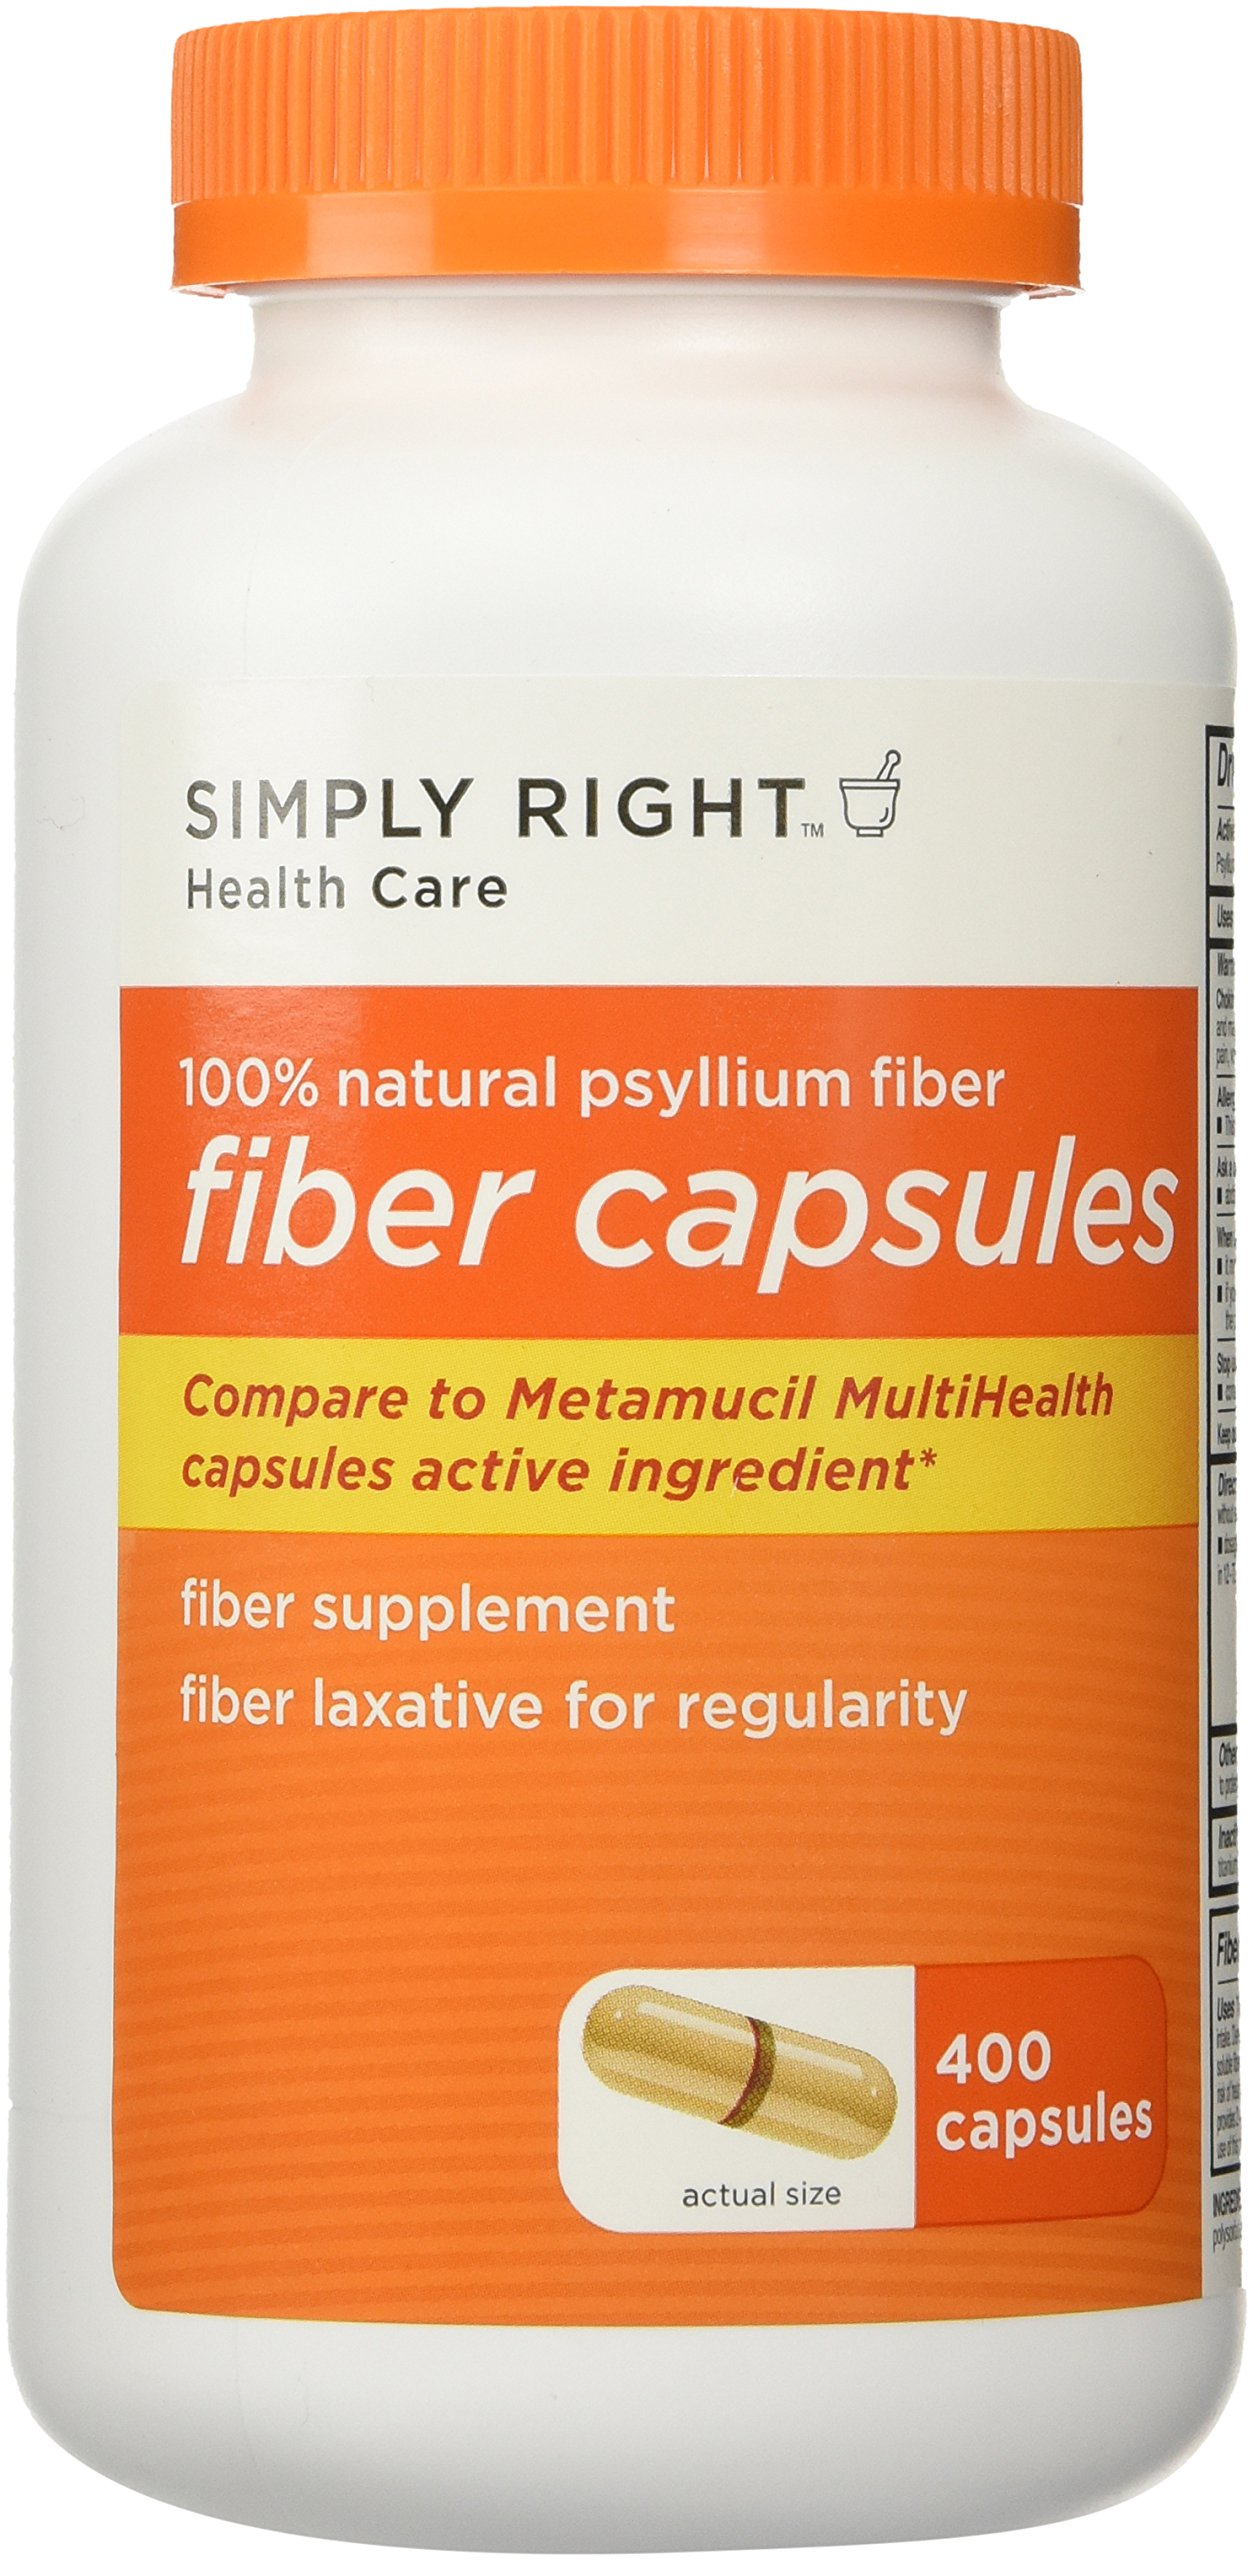 800 Count Fiber Capsules Simply Right Therapy for Regularity/Fiber Supplement - Compare to the Active Ingredient in Metamucil Capsules